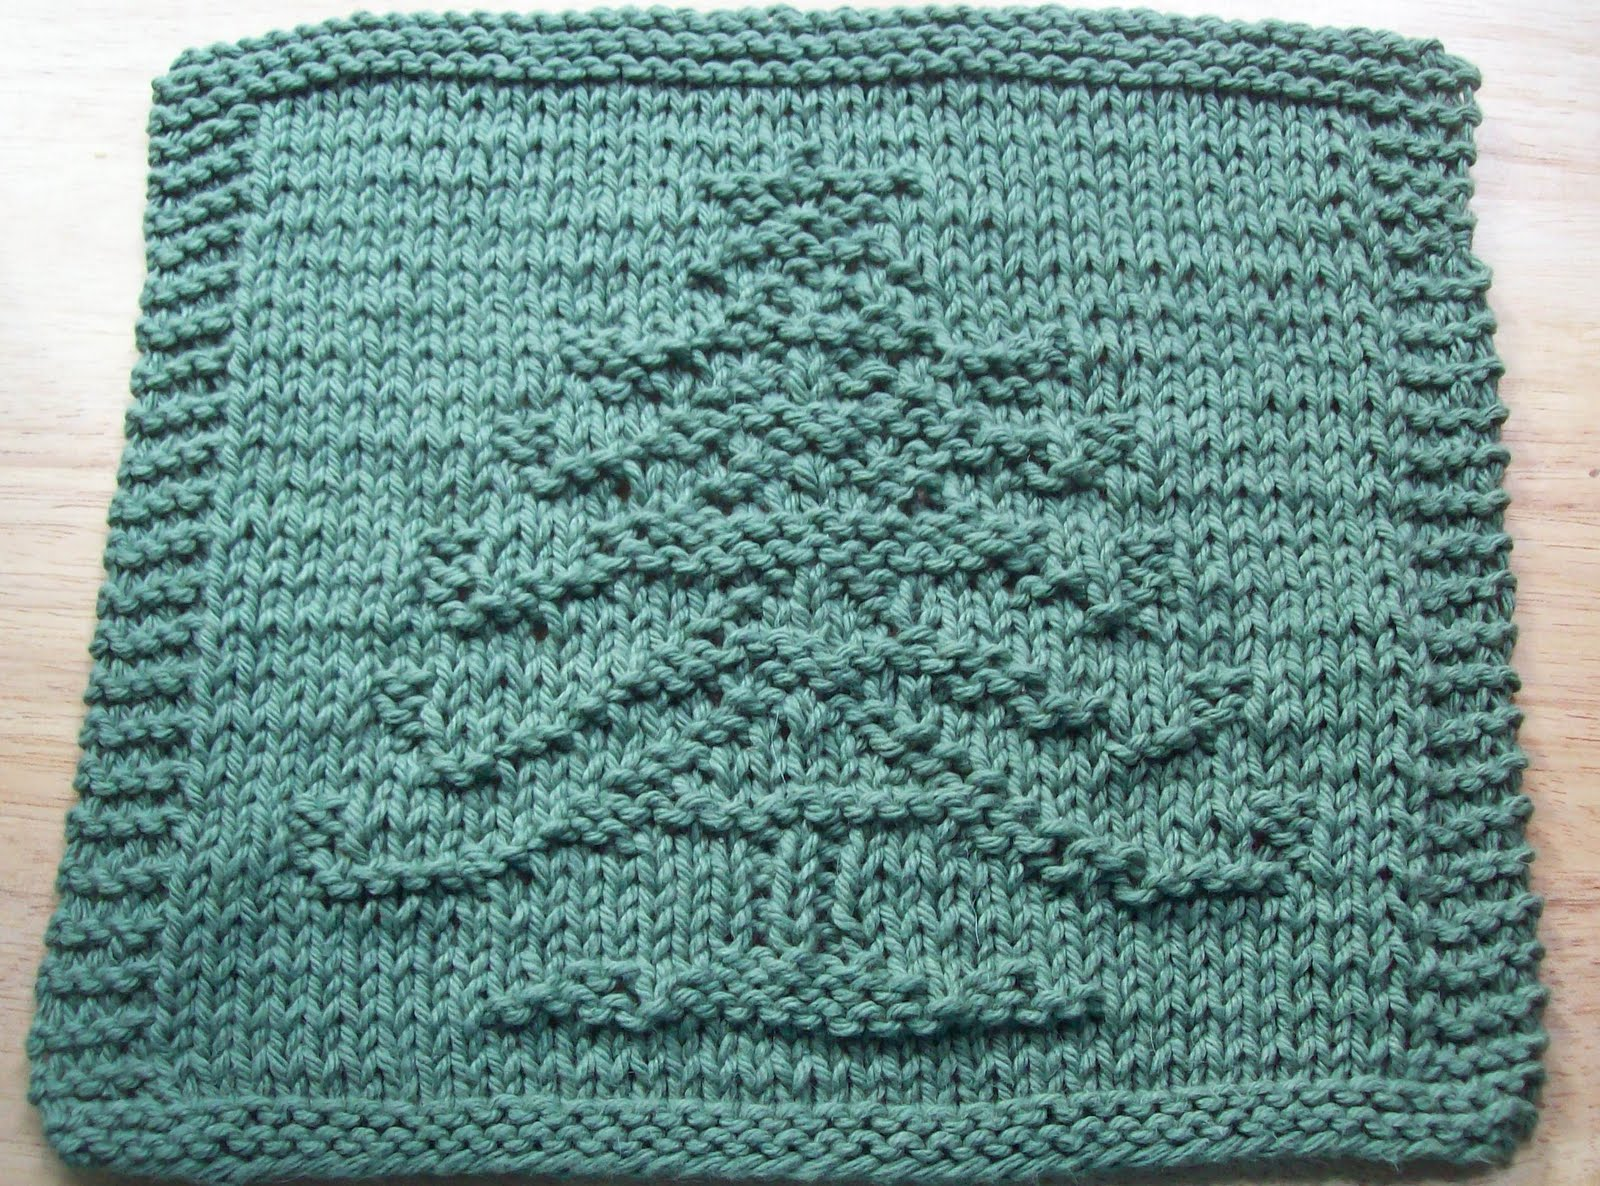 Dishcloth Knit Patterns Free : DigKnitty Designs: Another Christmas Tree Knit Dishcloth Pattern